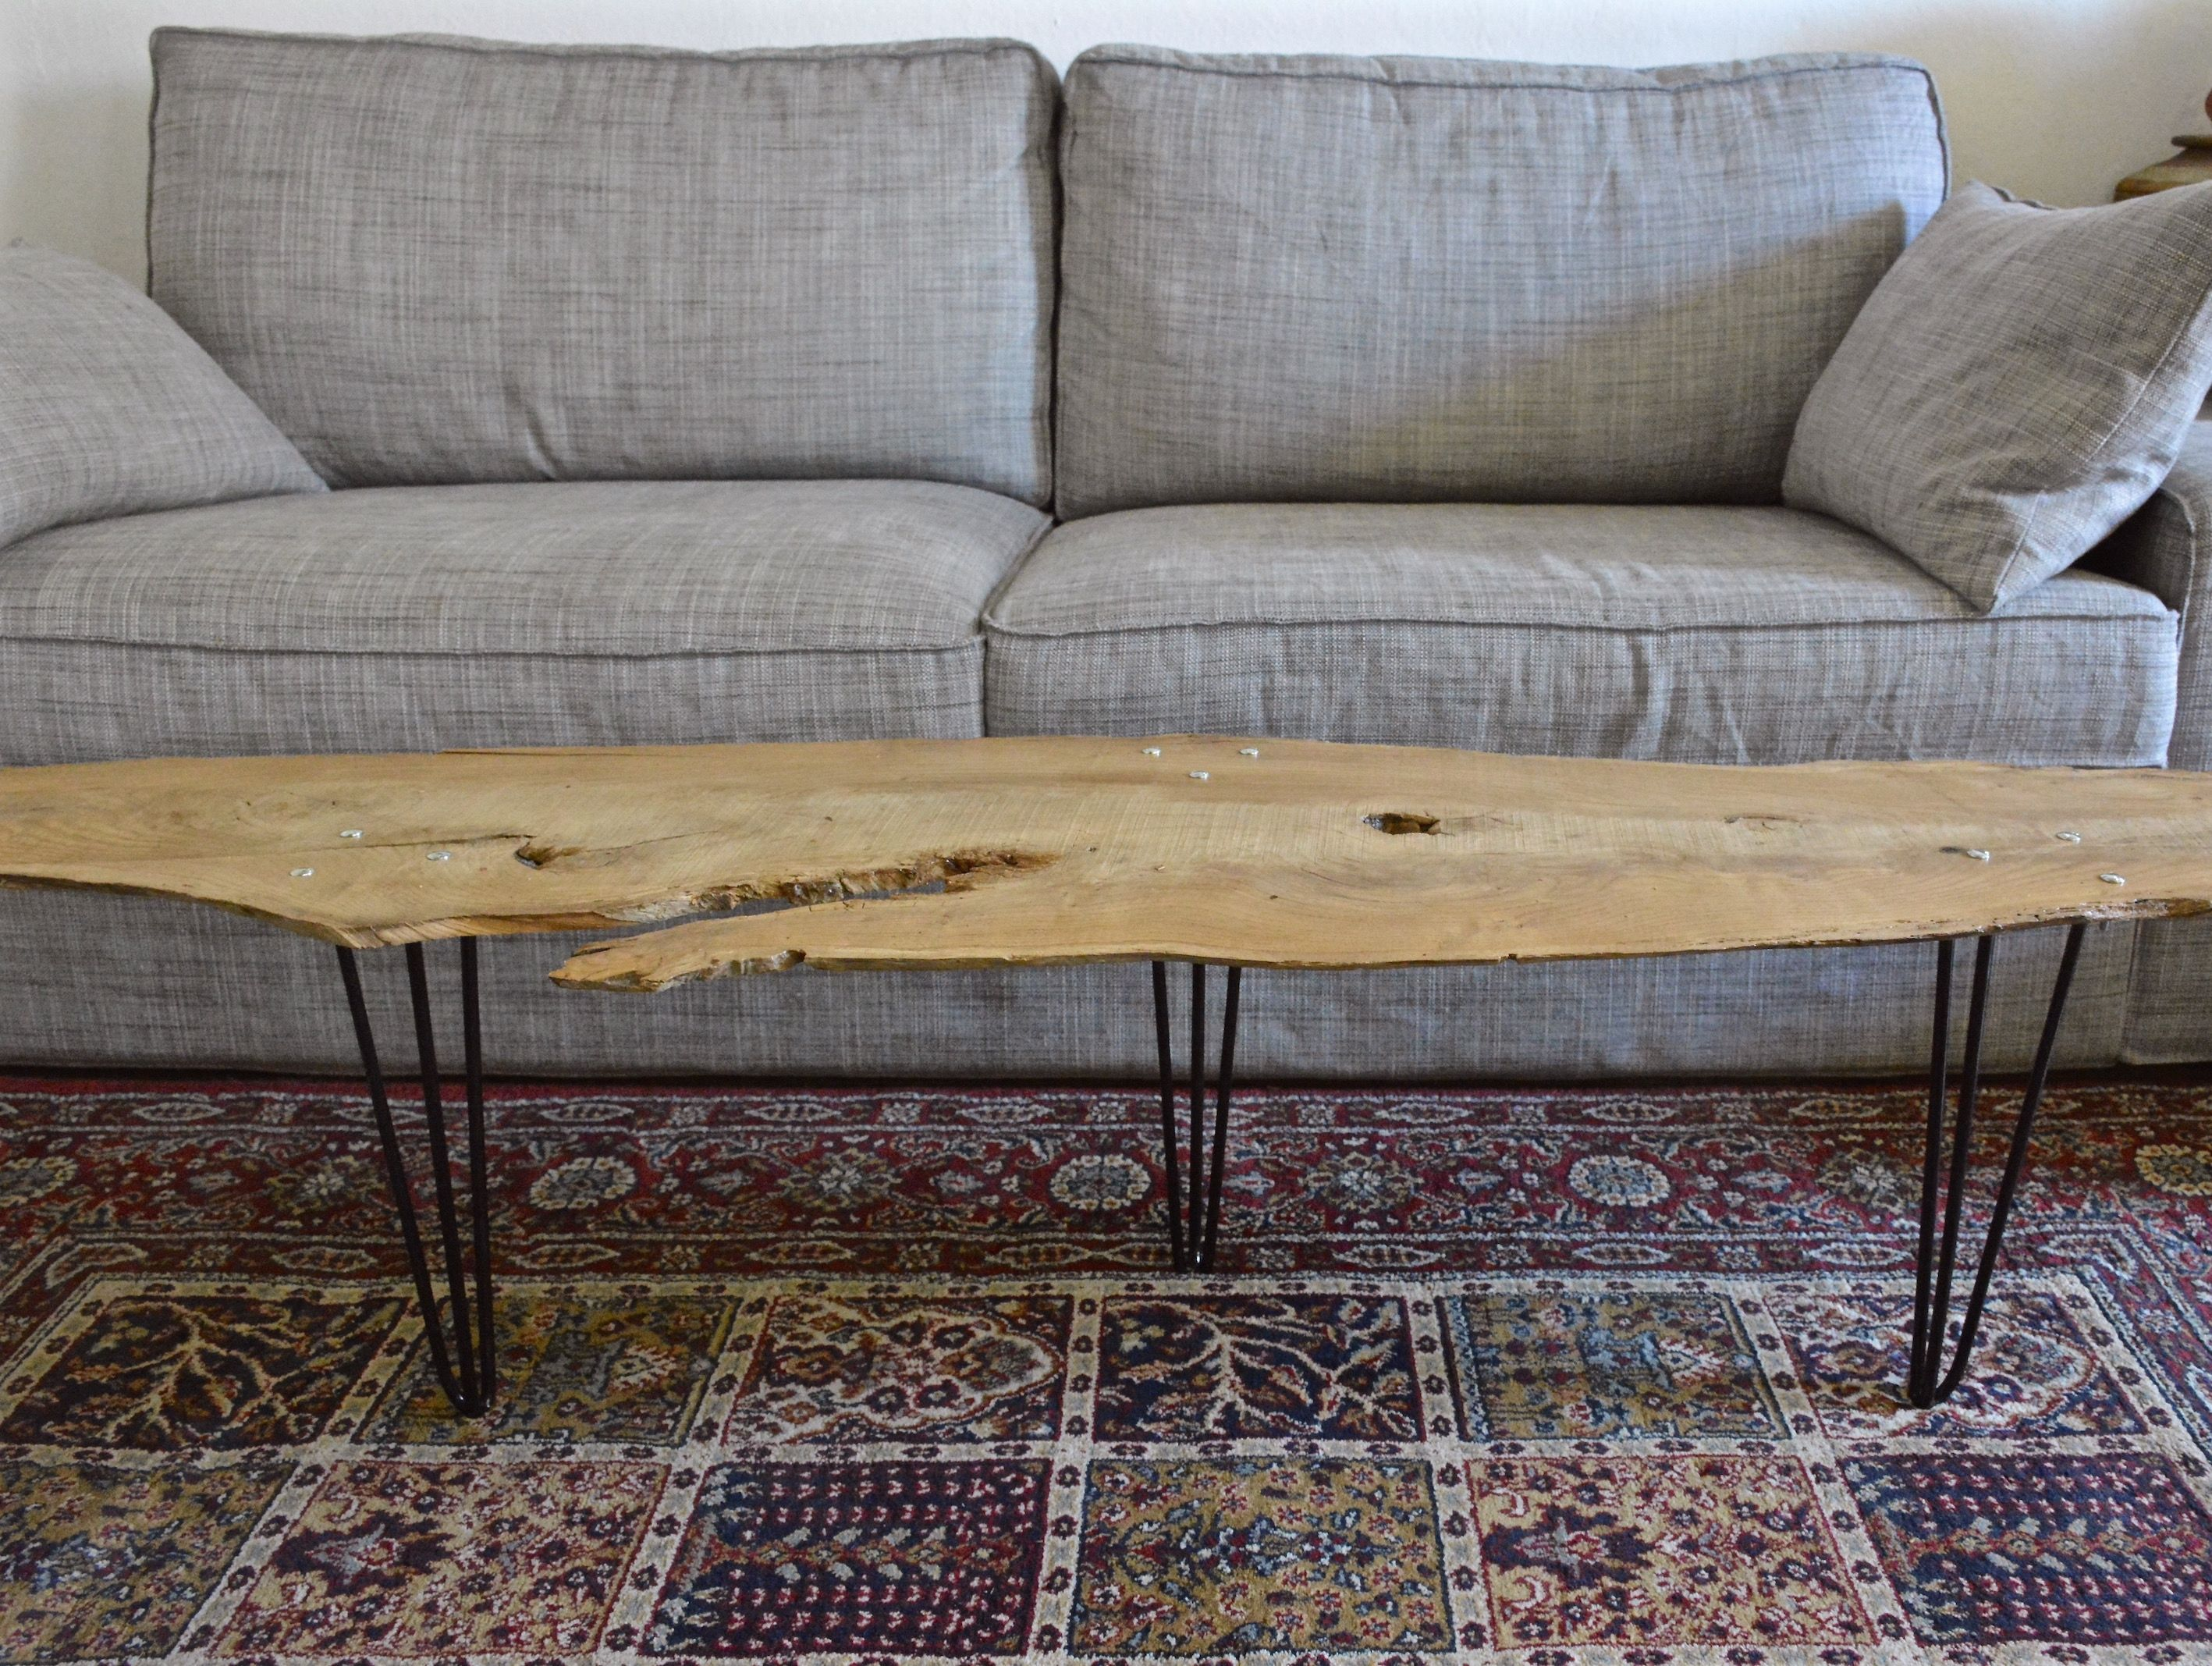 Table Basse Planche Tronc D Arbre Par Le Meuble Du Photographe Table Basse Table Basse Bois Mobilier De Salon